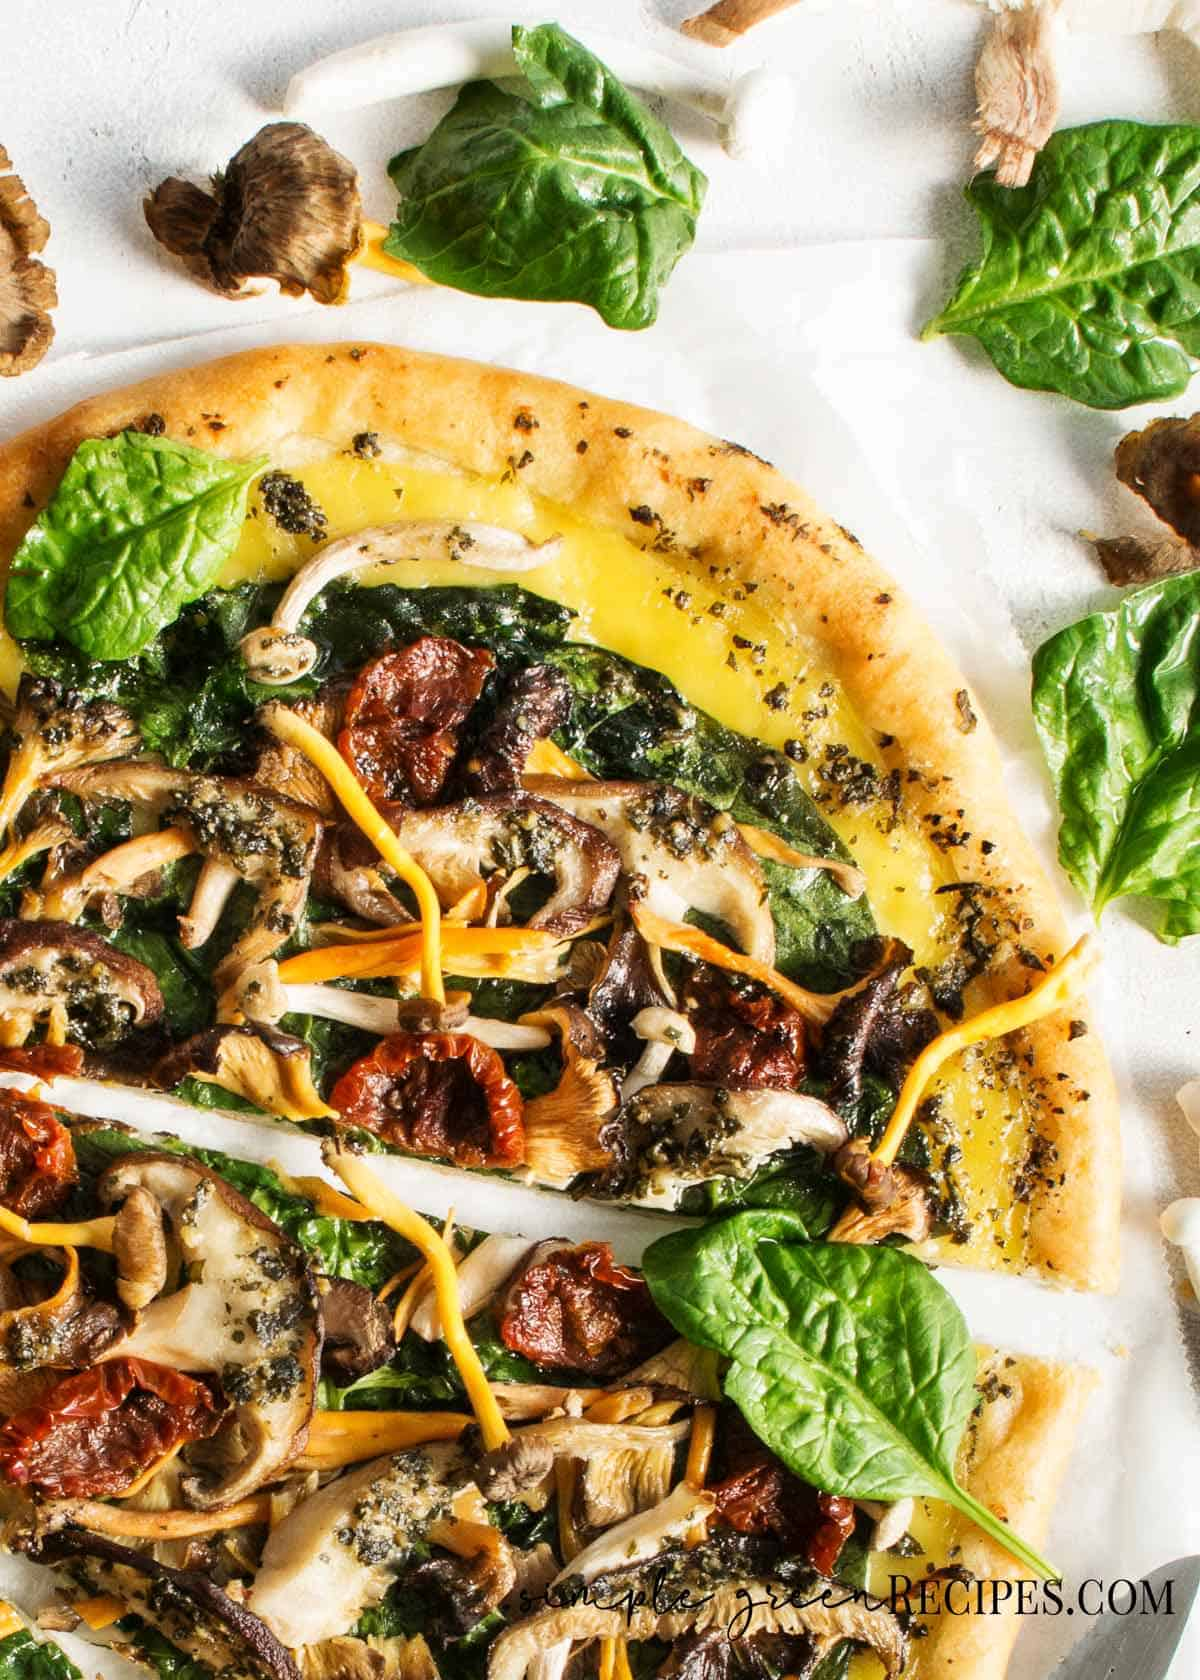 Sliced pizza topped with cheese and veggies and mushrooms against a white background.